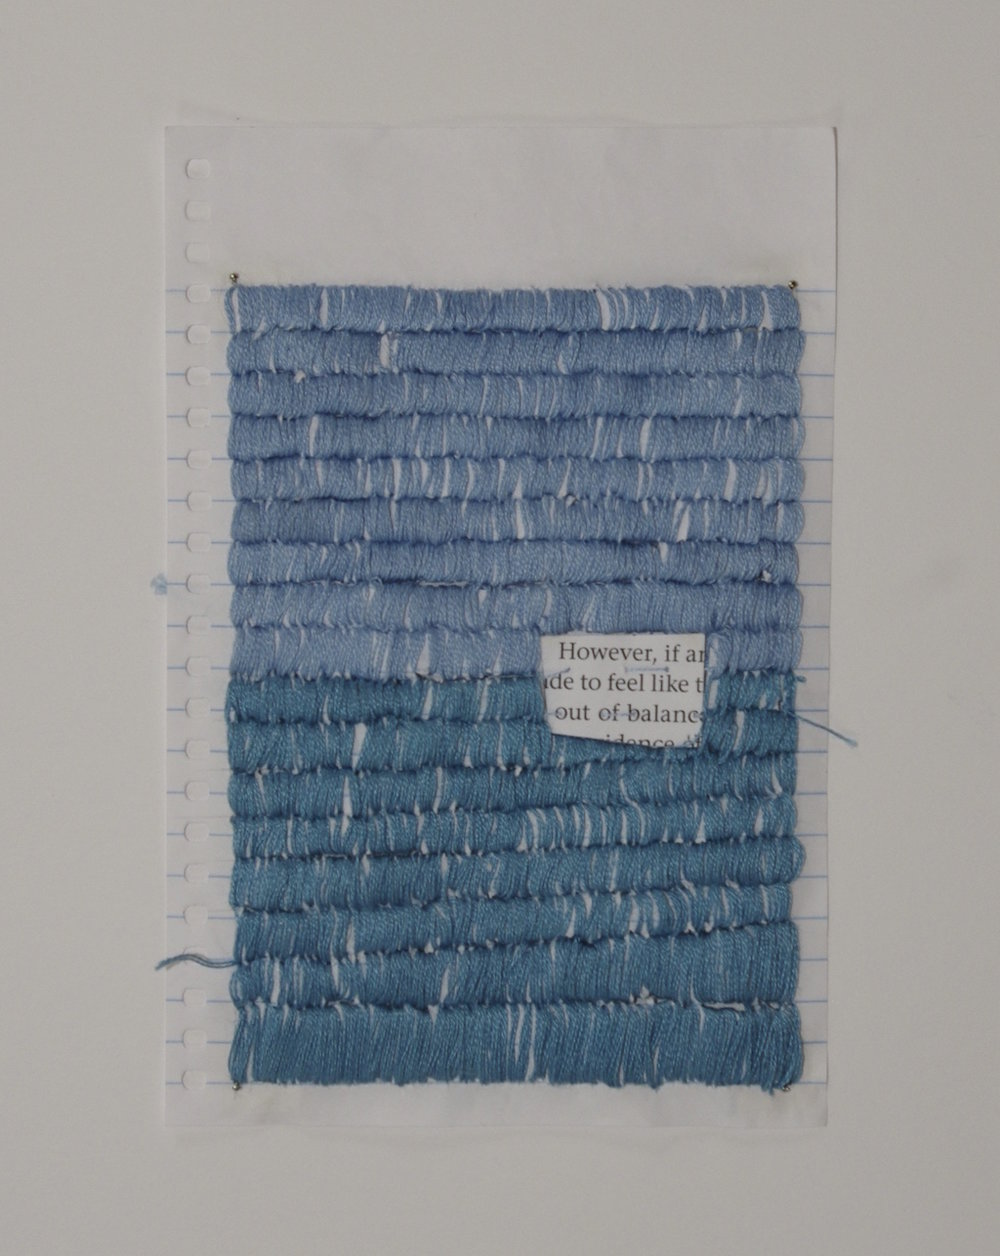 Out of Balance , 2014, found text, embroidery thread, and paper